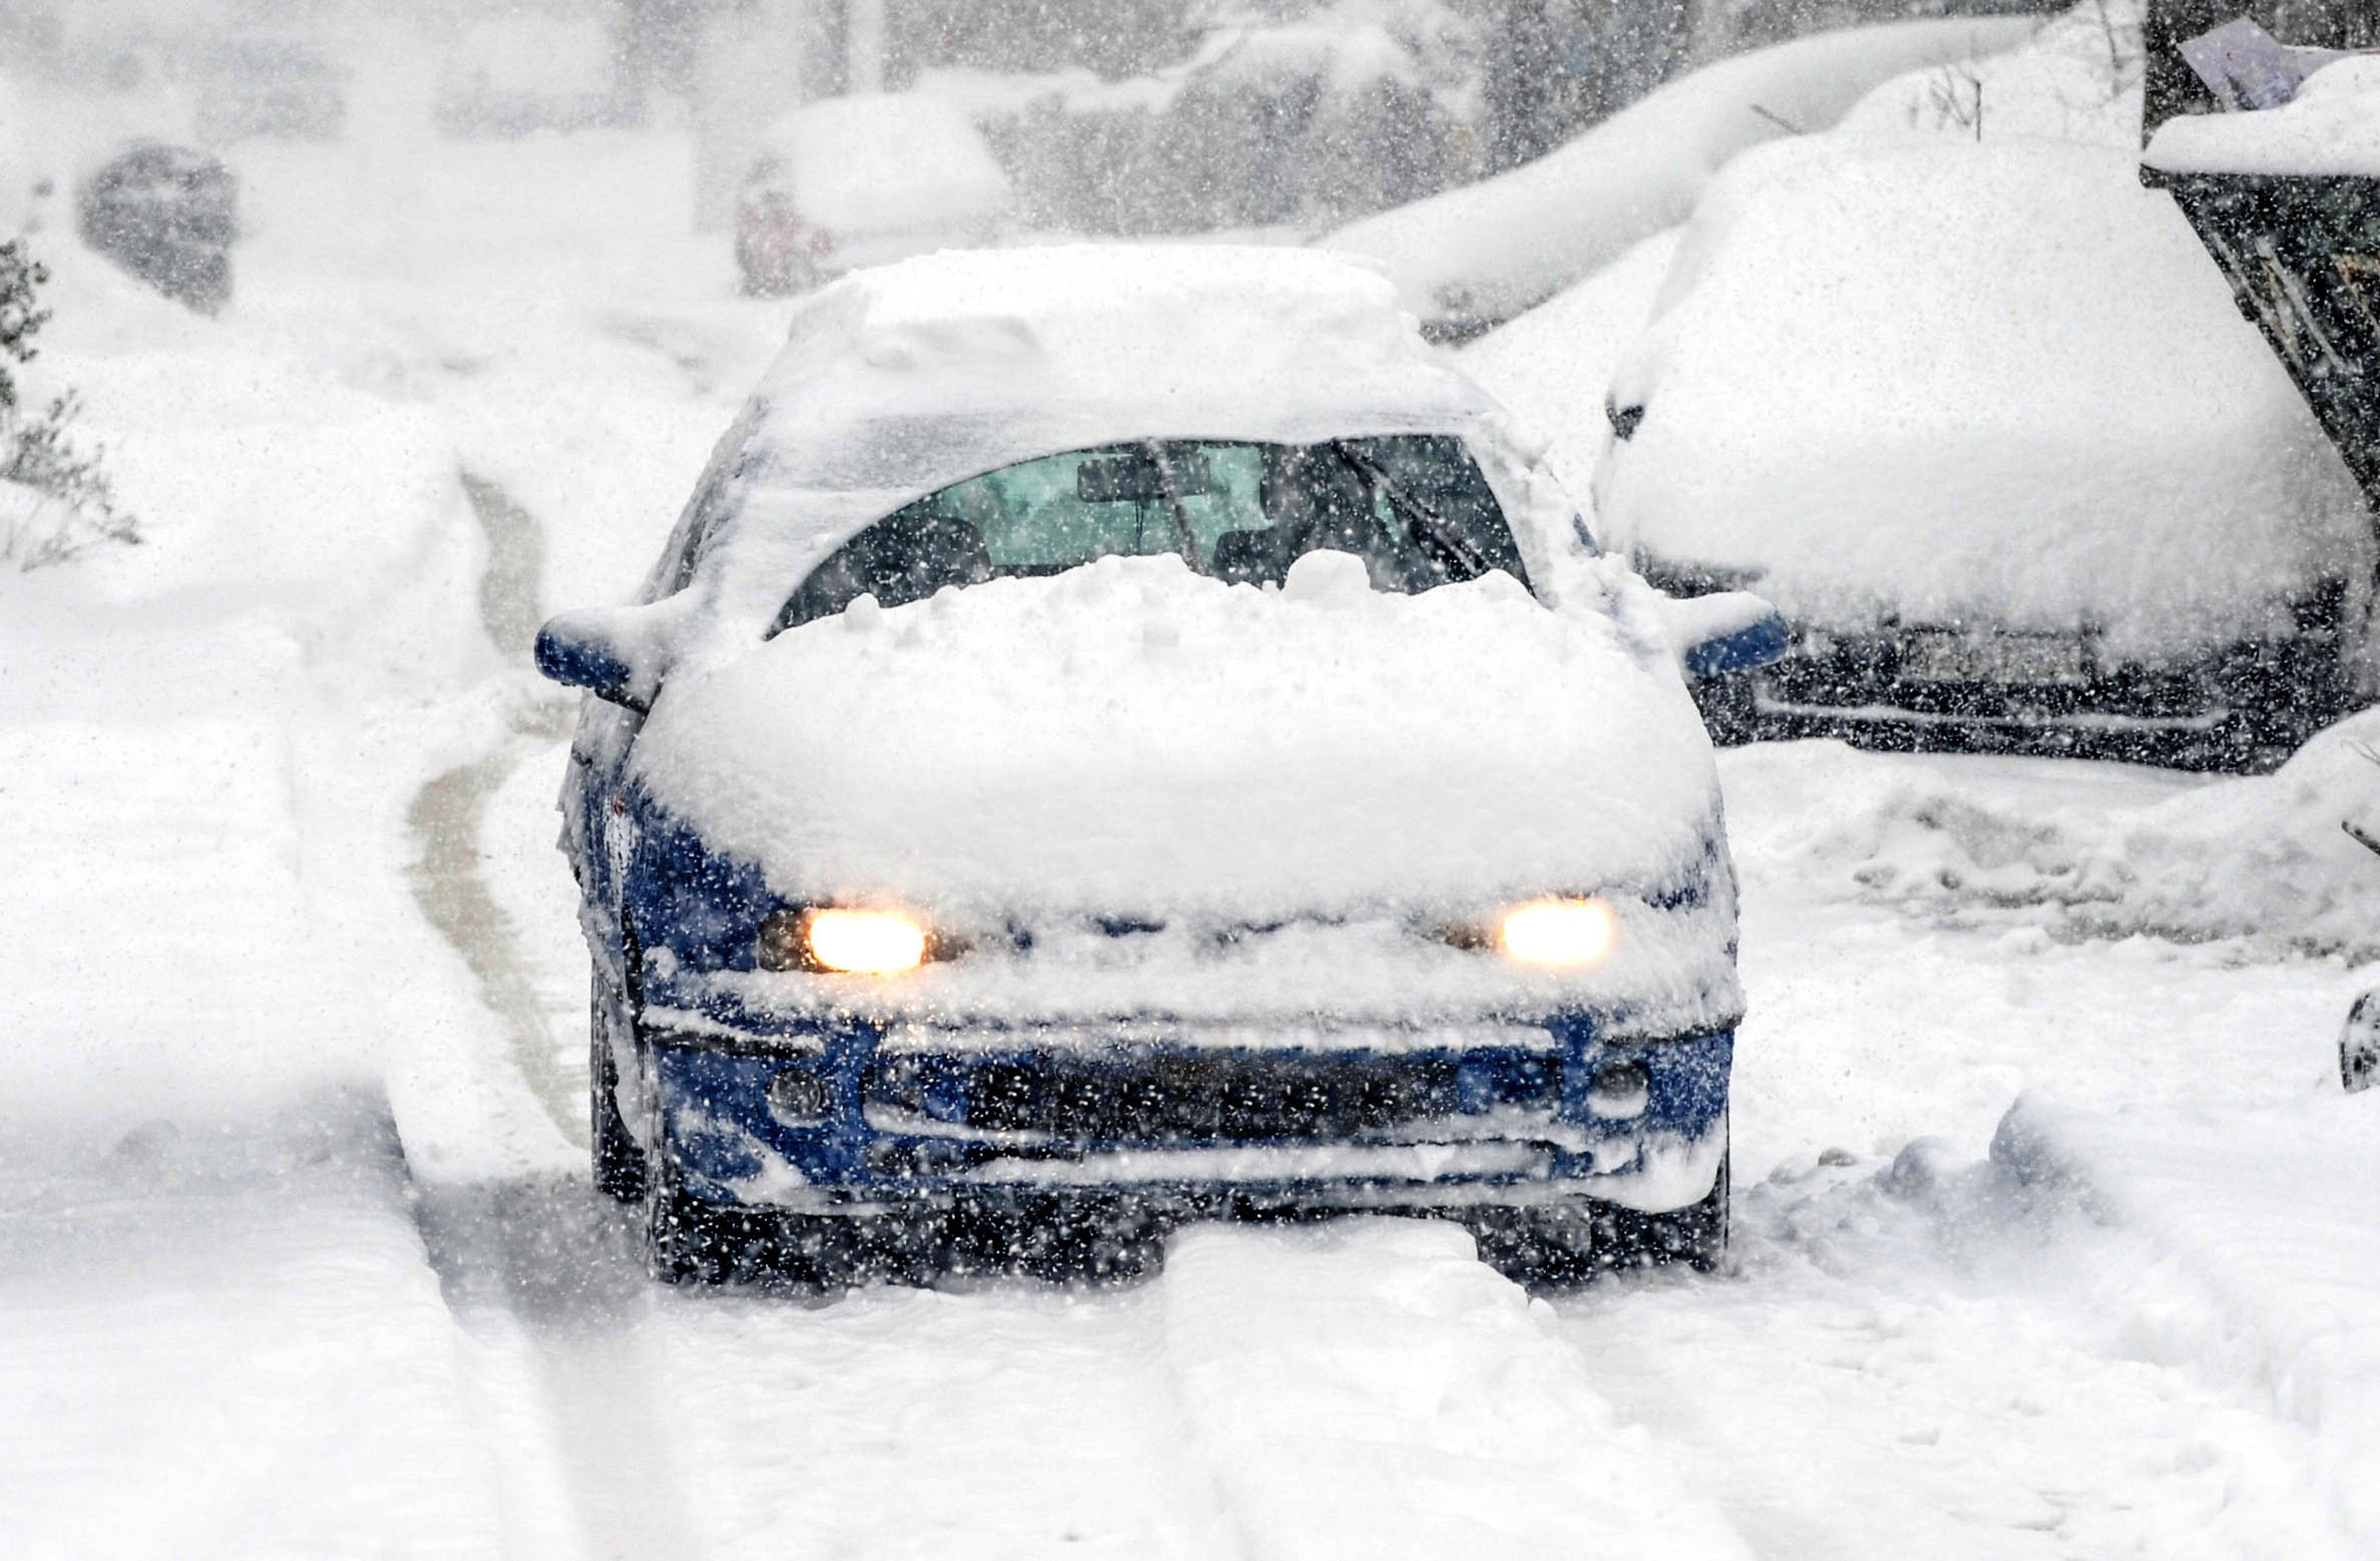 A snow covered car drives in winter storm